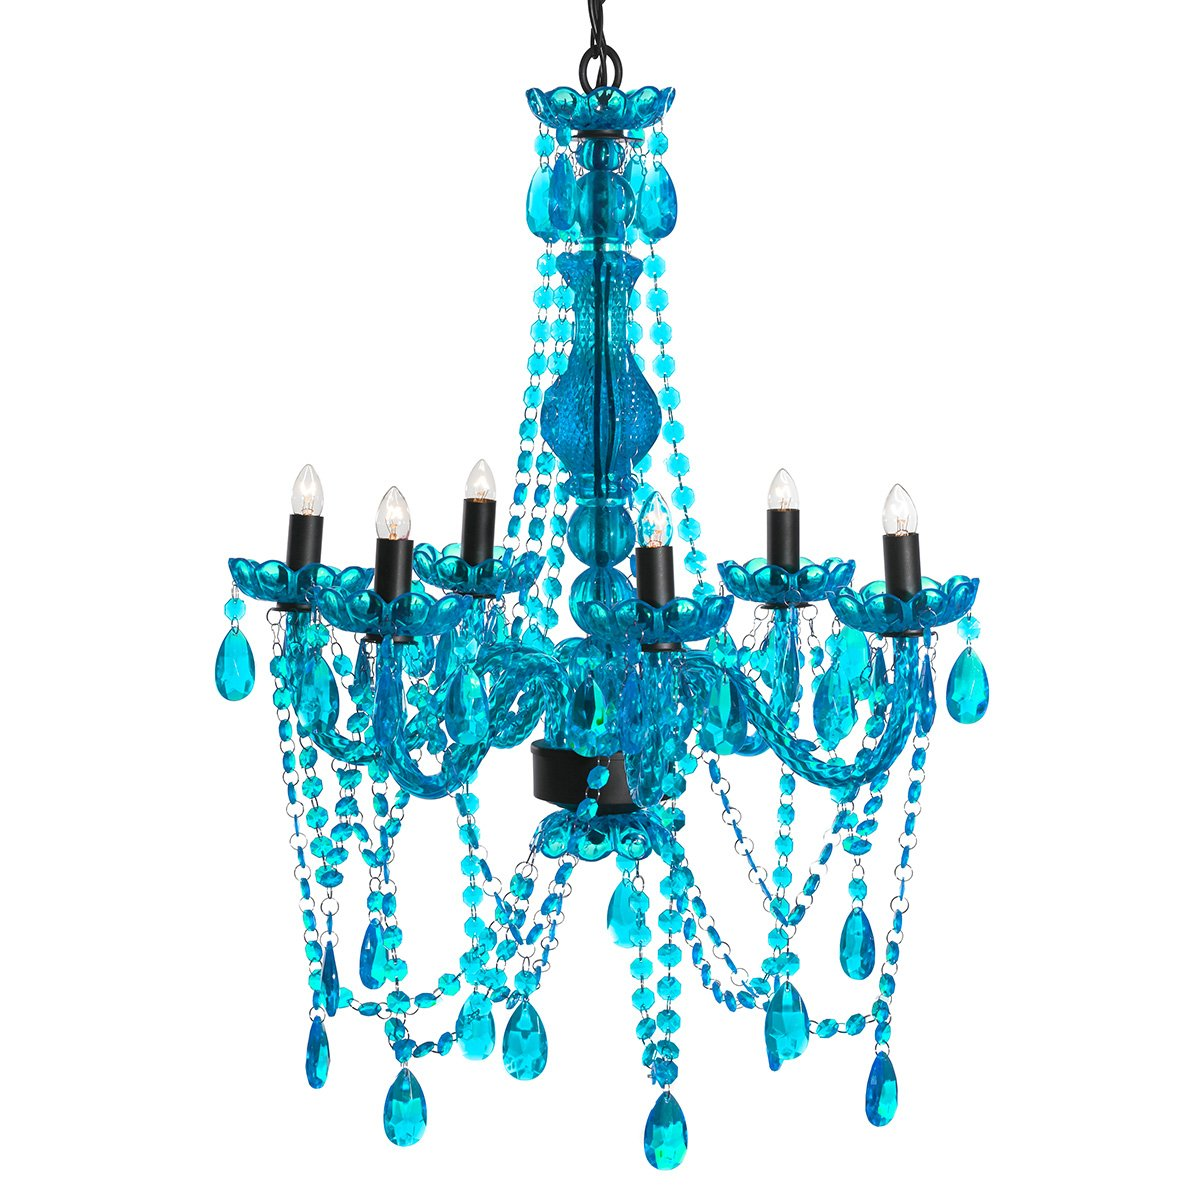 turquoise chandelier lighting. Turquoise Chandelier Lighting. Lighting I